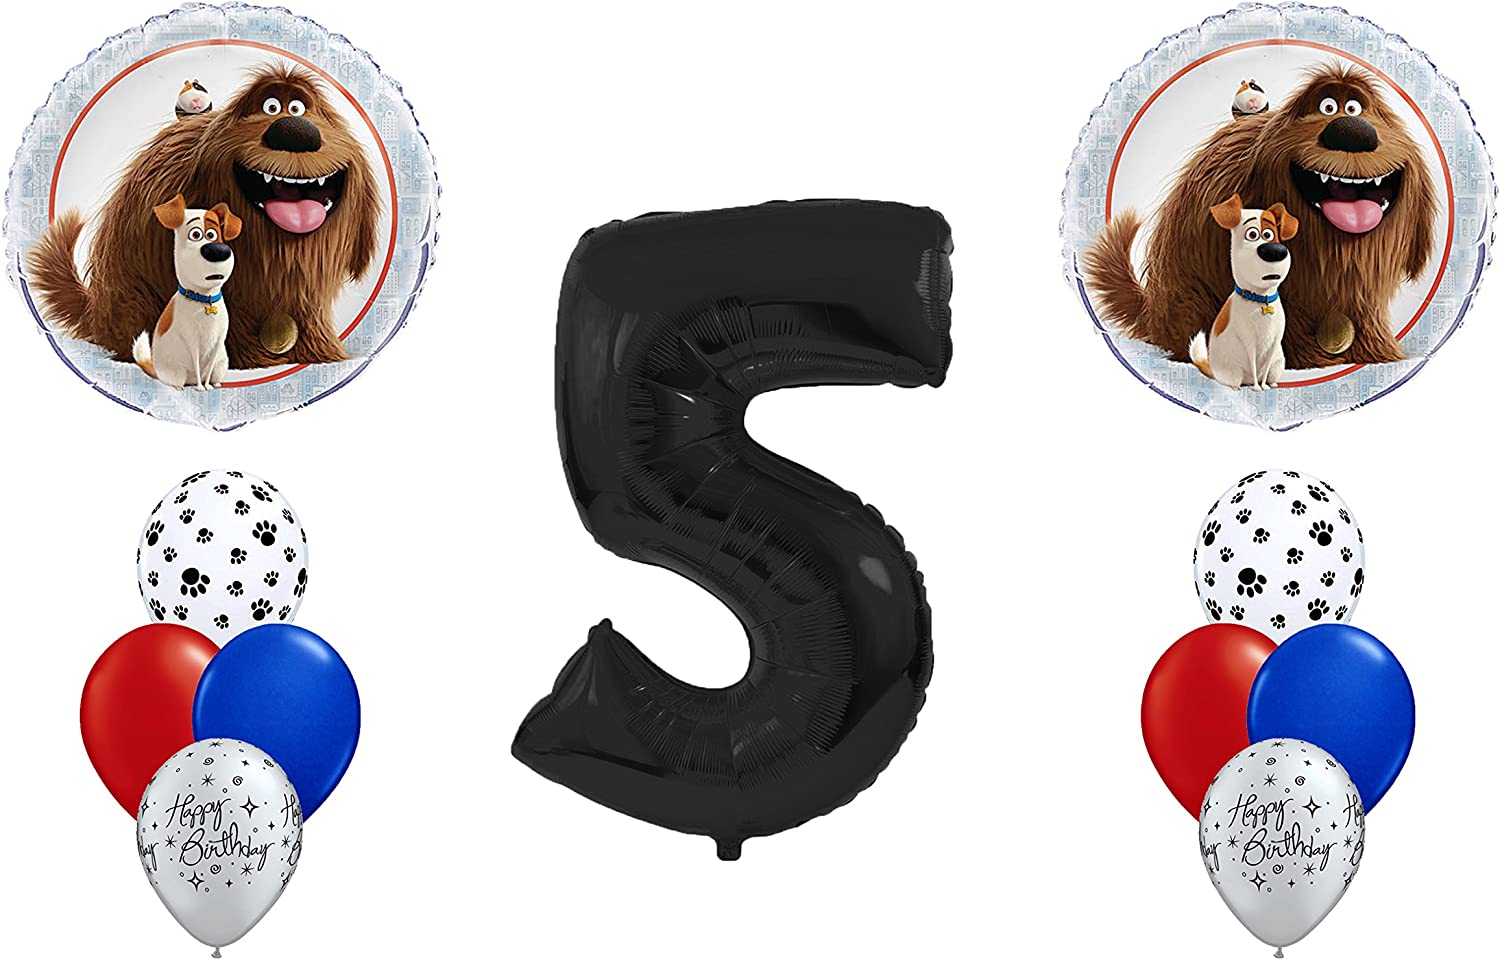 ventas calientes Disney The Secret Life of Pets Party Pack  5th 5th 5th Birthday Balloon Bouquet by Partysupplybyspursgrl  alto descuento